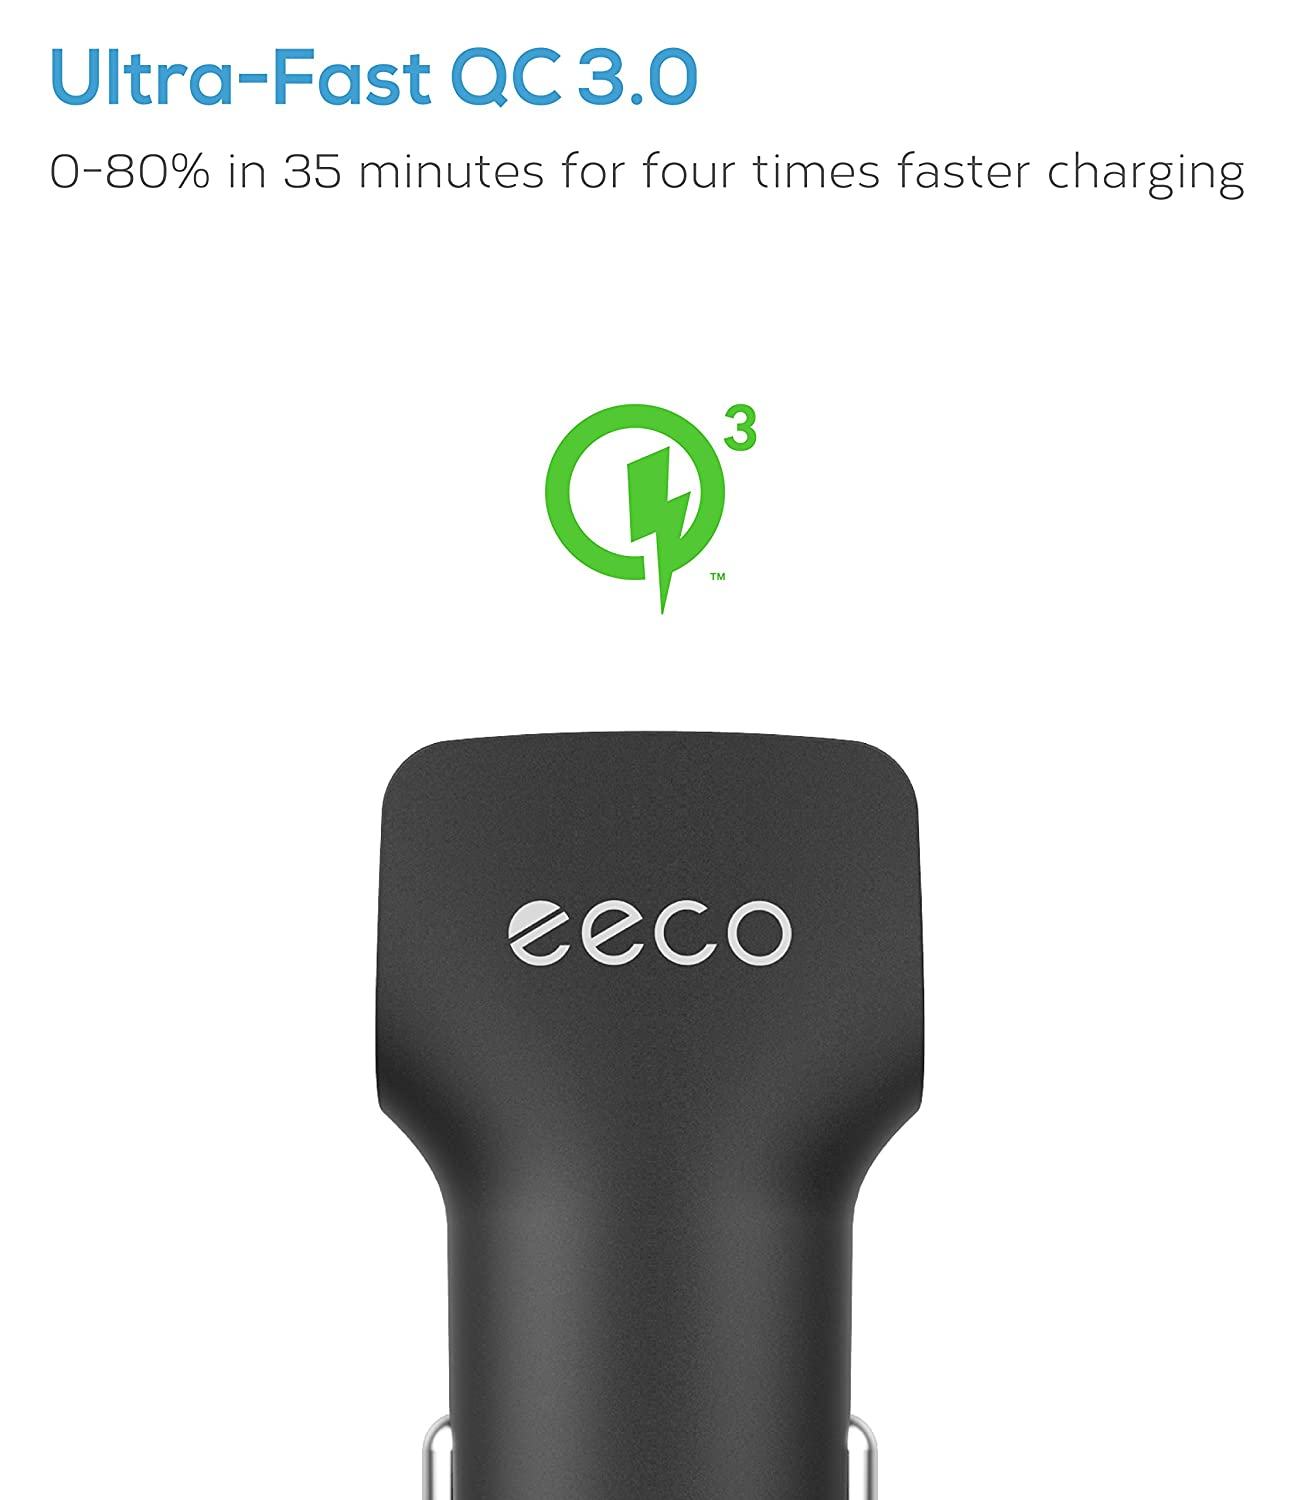 Nexus in Car Charger Quick Charge 3.0 HTC and More iPad Pro//Air Note 8 smartIC Charging for iPhone X//8//7//6s//Plus LG eeco 18W USB High Speed Car Charging Adapter for Galaxy S8//S7//S6//Edge//Plus